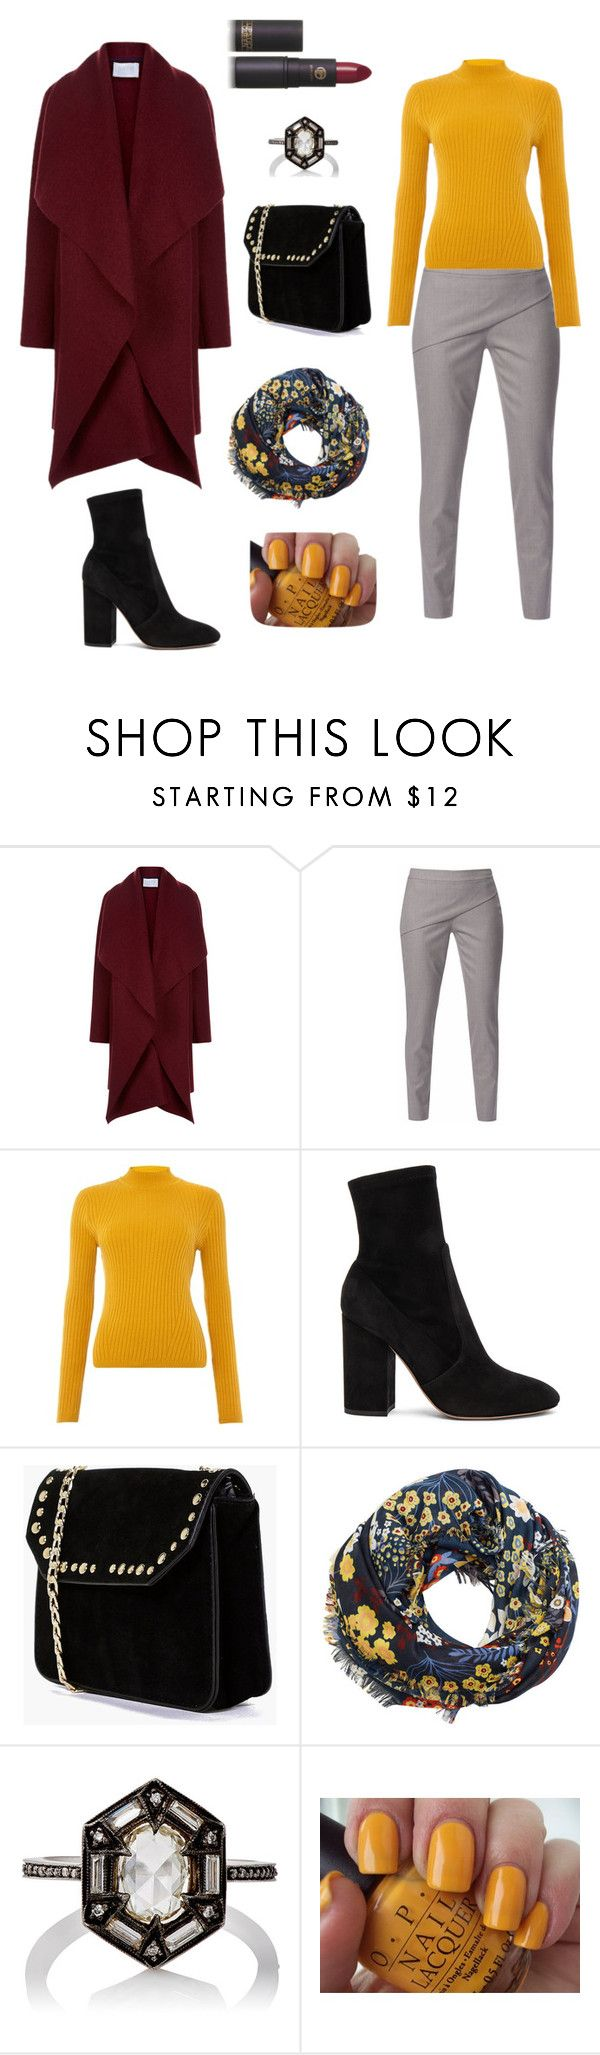 Пальто by malishevan on Polyvore featuring мода, Therapy, Harris Wharf London, WtR London, Valentino, Boohoo, Cathy Waterman, MANGO, Lipstick Queen and OPI